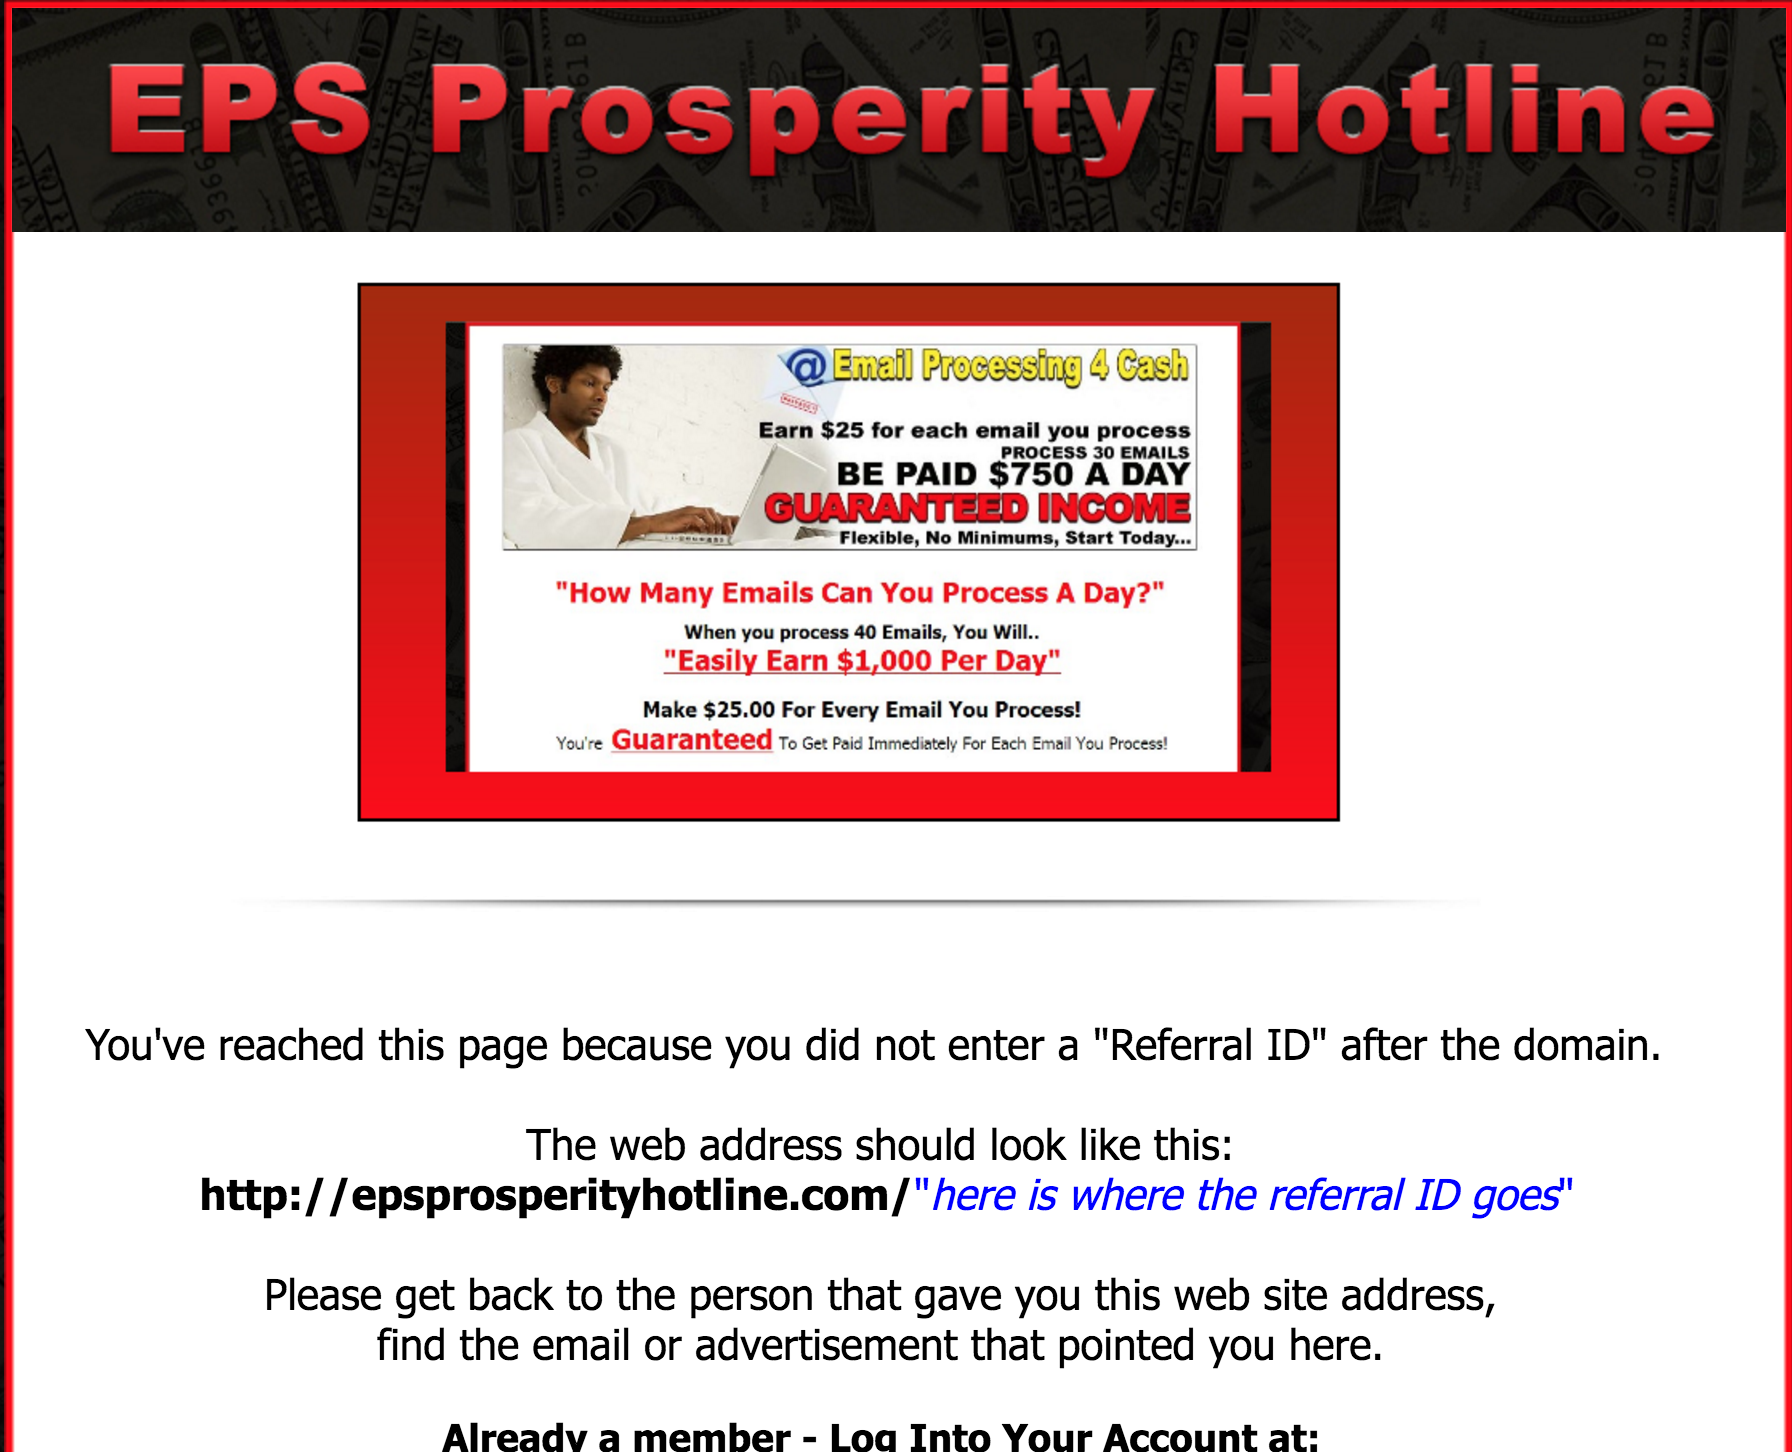 EPS Prosperity Hotline review